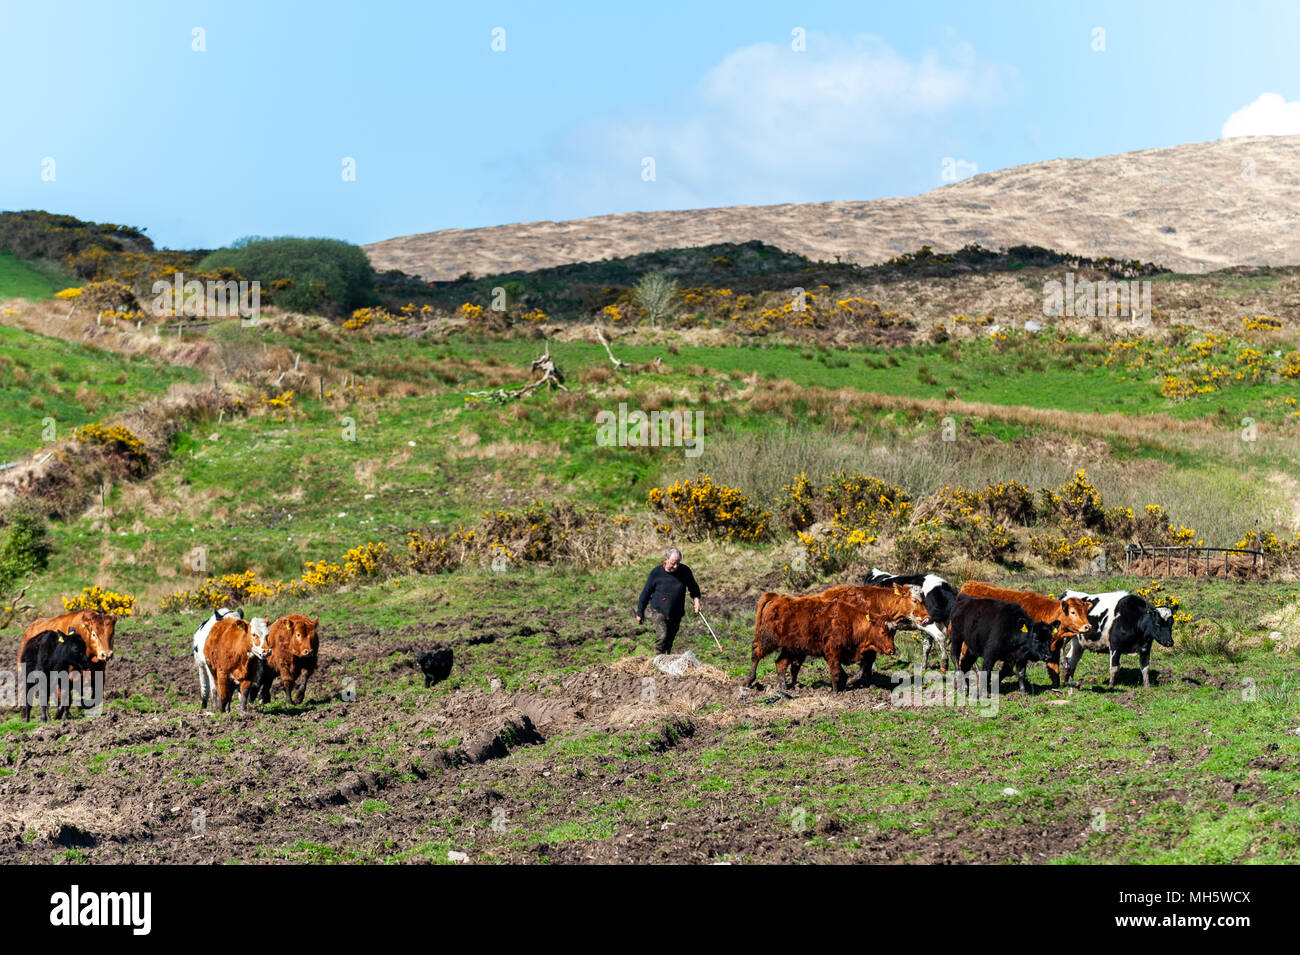 ballydehob-ireland-mon-30th-apr-2018-a-local-farmer-moves-his-cattle-to-the-farmyard-for-tb-testing-on-a-bright-and-sunny-day-the-day-will-have-sunny-spells-and-scattered-showers-with-highs-of-10-to-13-degrees-credit-andy-gibsonalamy-live-news-MH5WCX.jpg